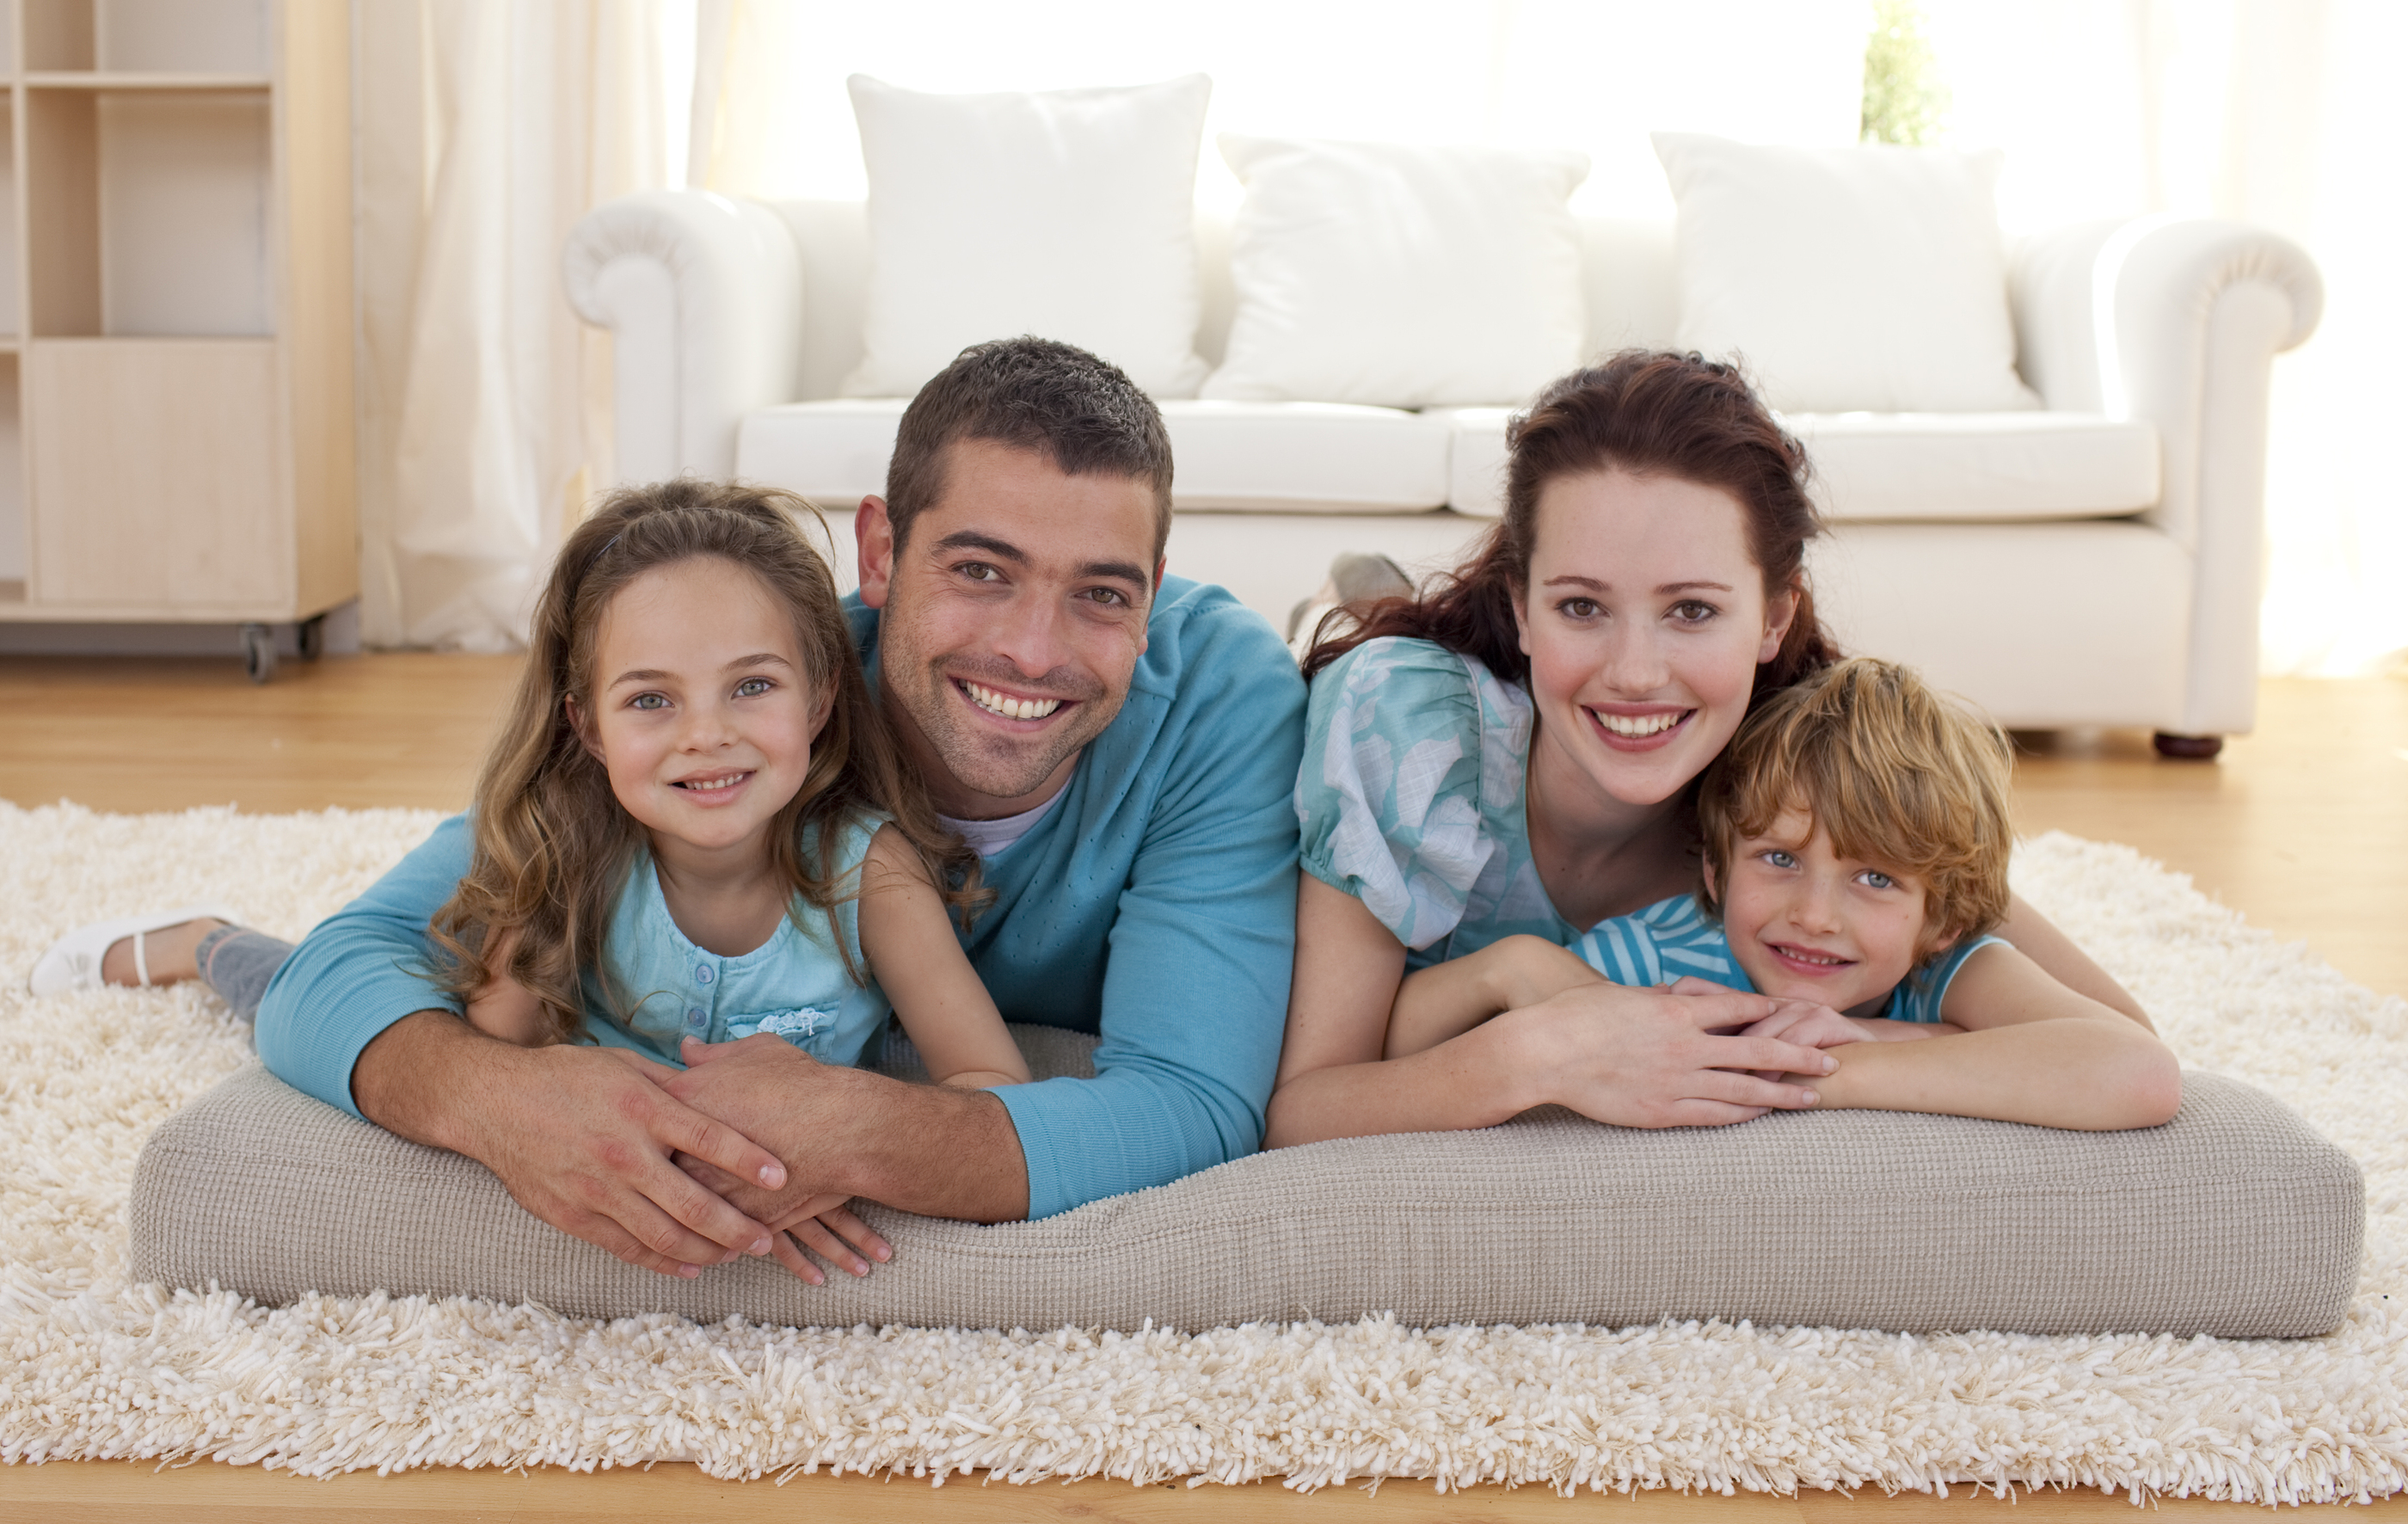 Family on Floor in Living Room